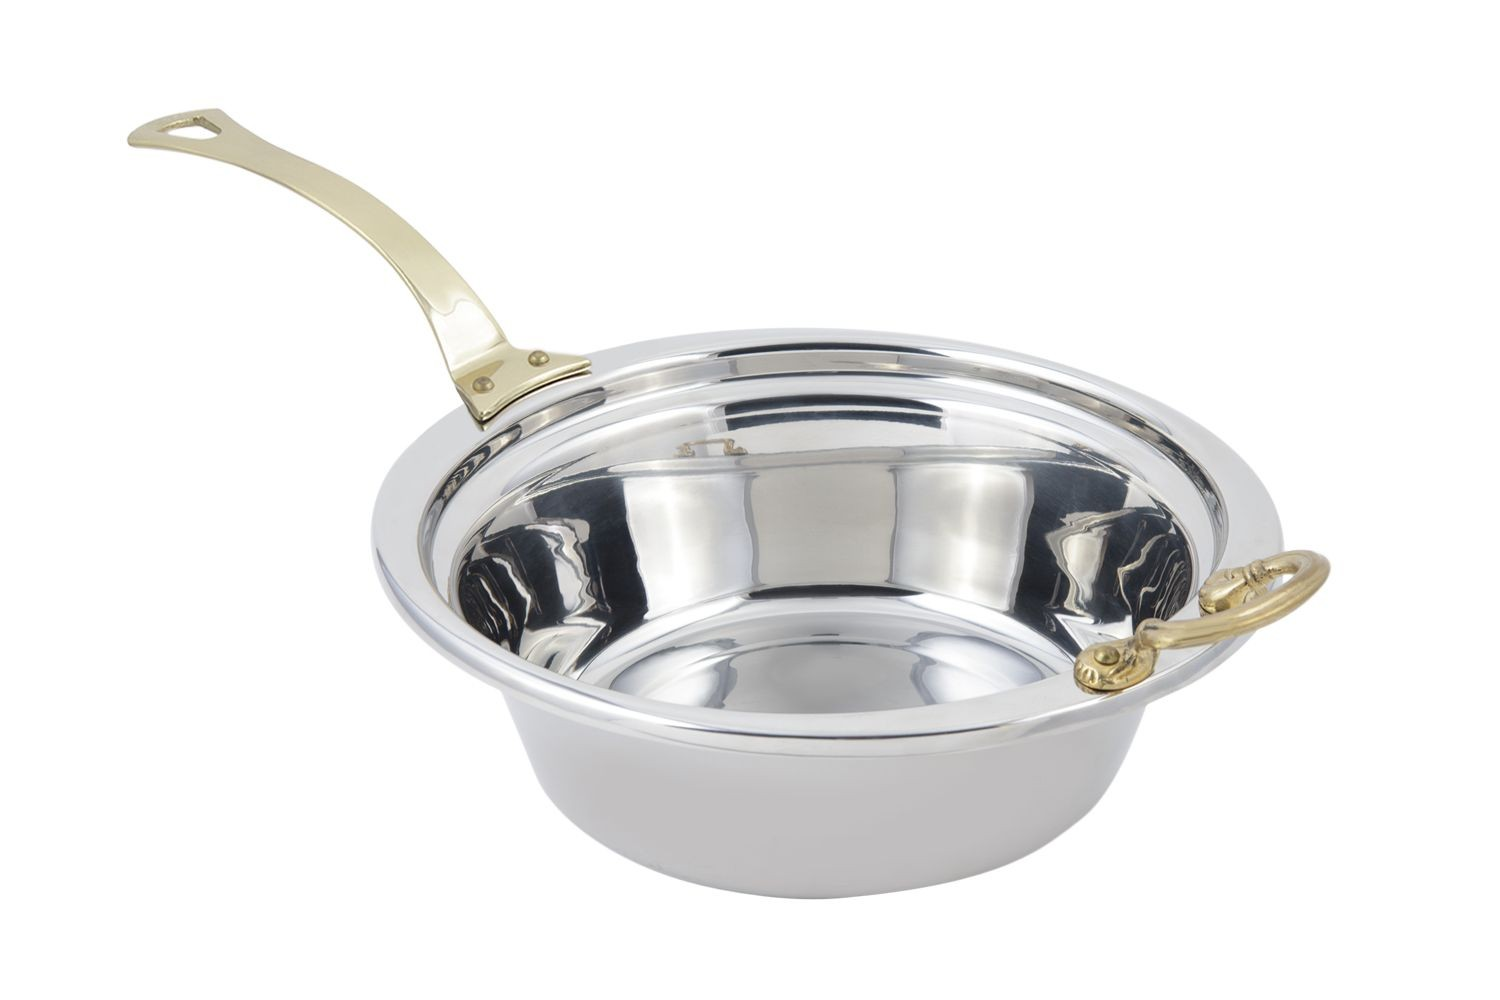 Bon Chef 5256HL Plain Design Casserole Dish with Long Brass Handle, 4 Qt.